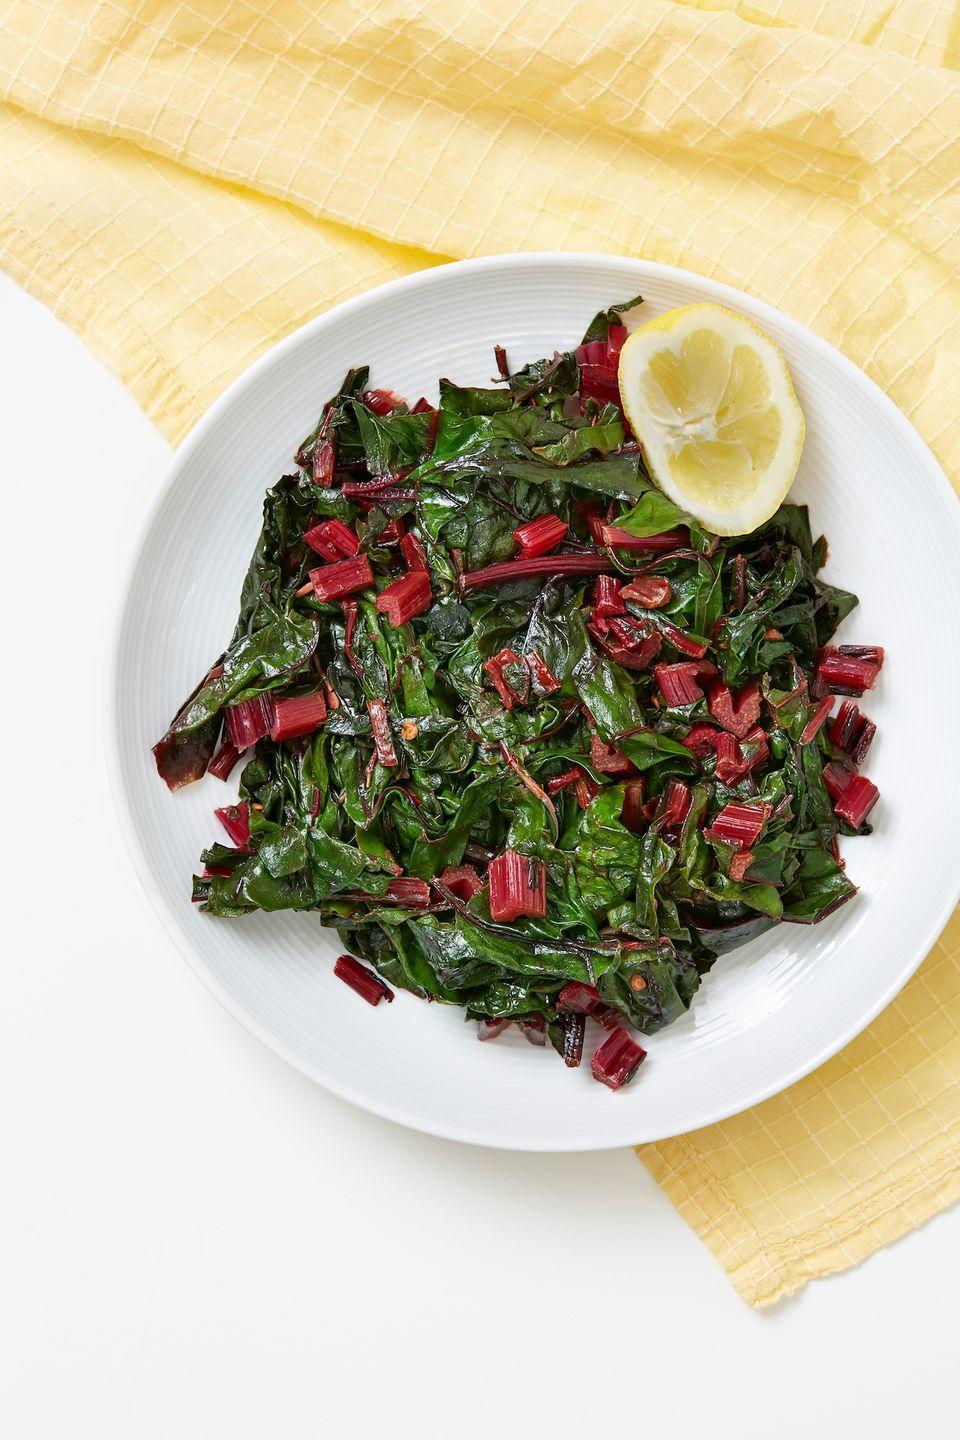 """<p>This might become your new go-to veggie side.</p><p>Get the recipe form <a href=""""https://www.delish.com/cooking/recipe-ideas/a32392605/swiss-chard-recipe/"""" rel=""""nofollow noopener"""" target=""""_blank"""" data-ylk=""""slk:Delish"""" class=""""link rapid-noclick-resp"""">Delish</a>. </p>"""